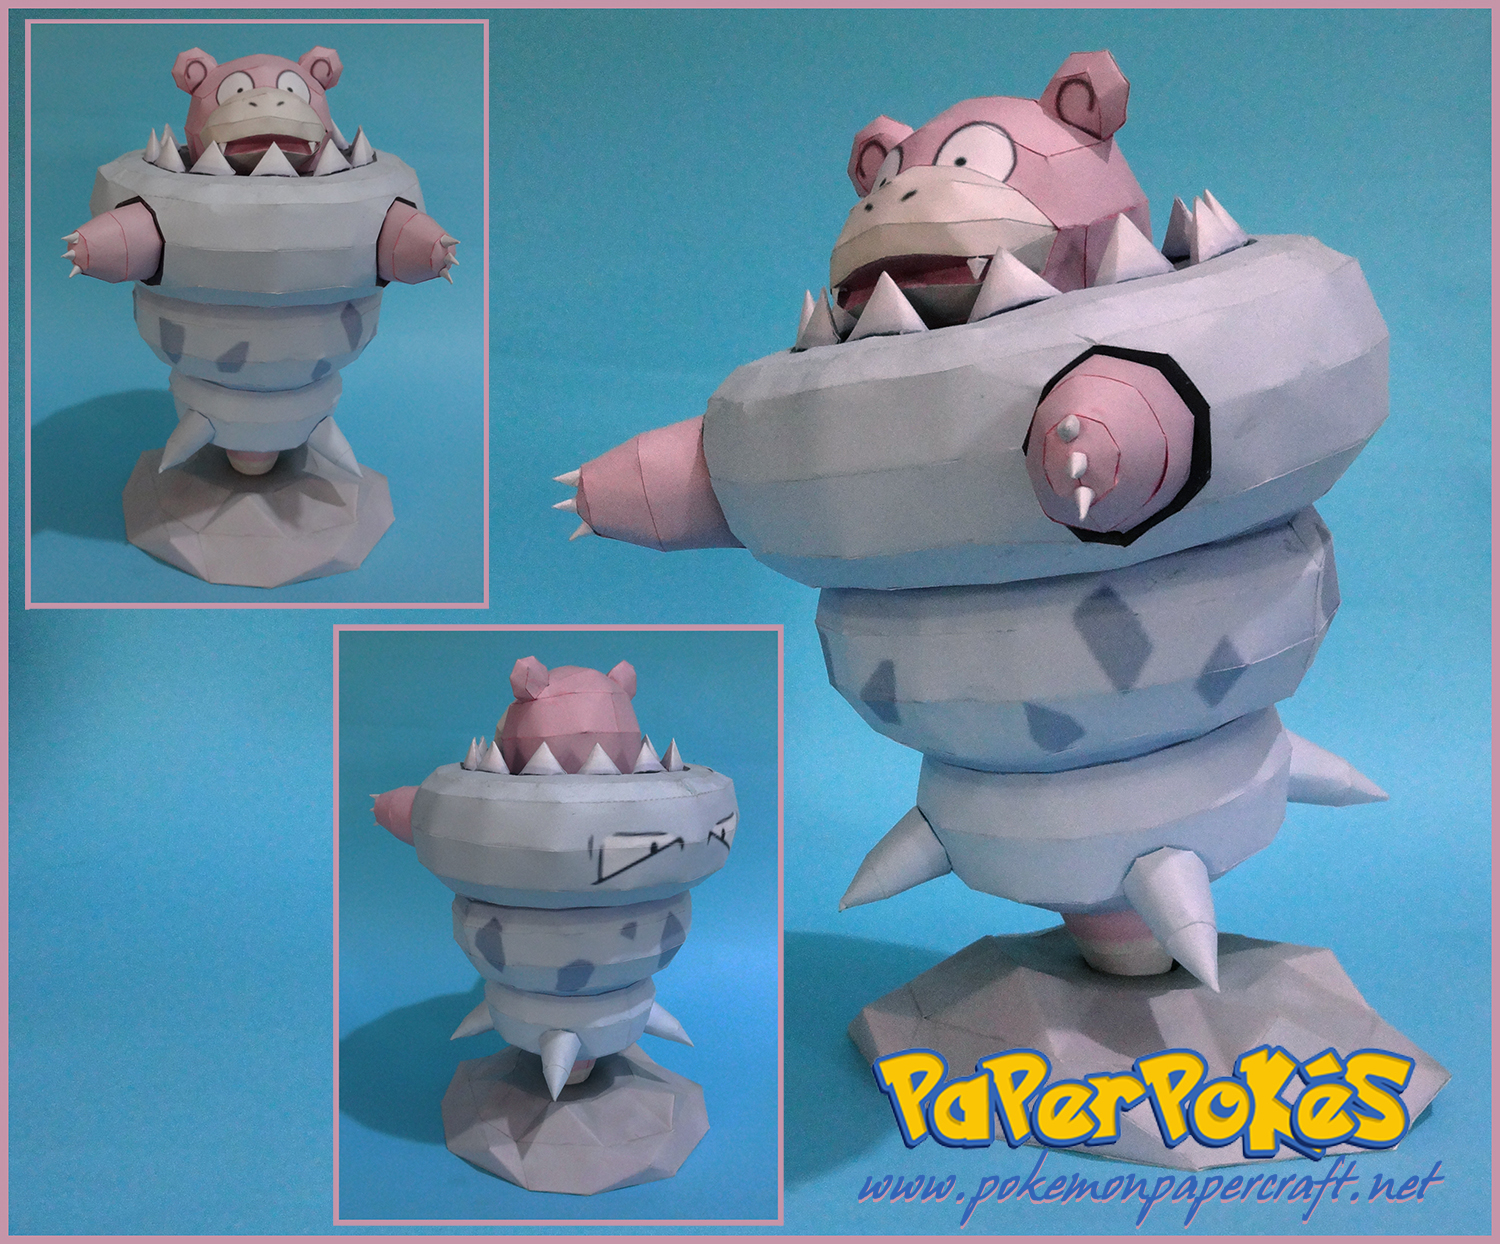 080 Mega Slowbro Pokémon Papercraft Name Type Water Psychic Species Hermit Crab Height 2 0 M 6 07